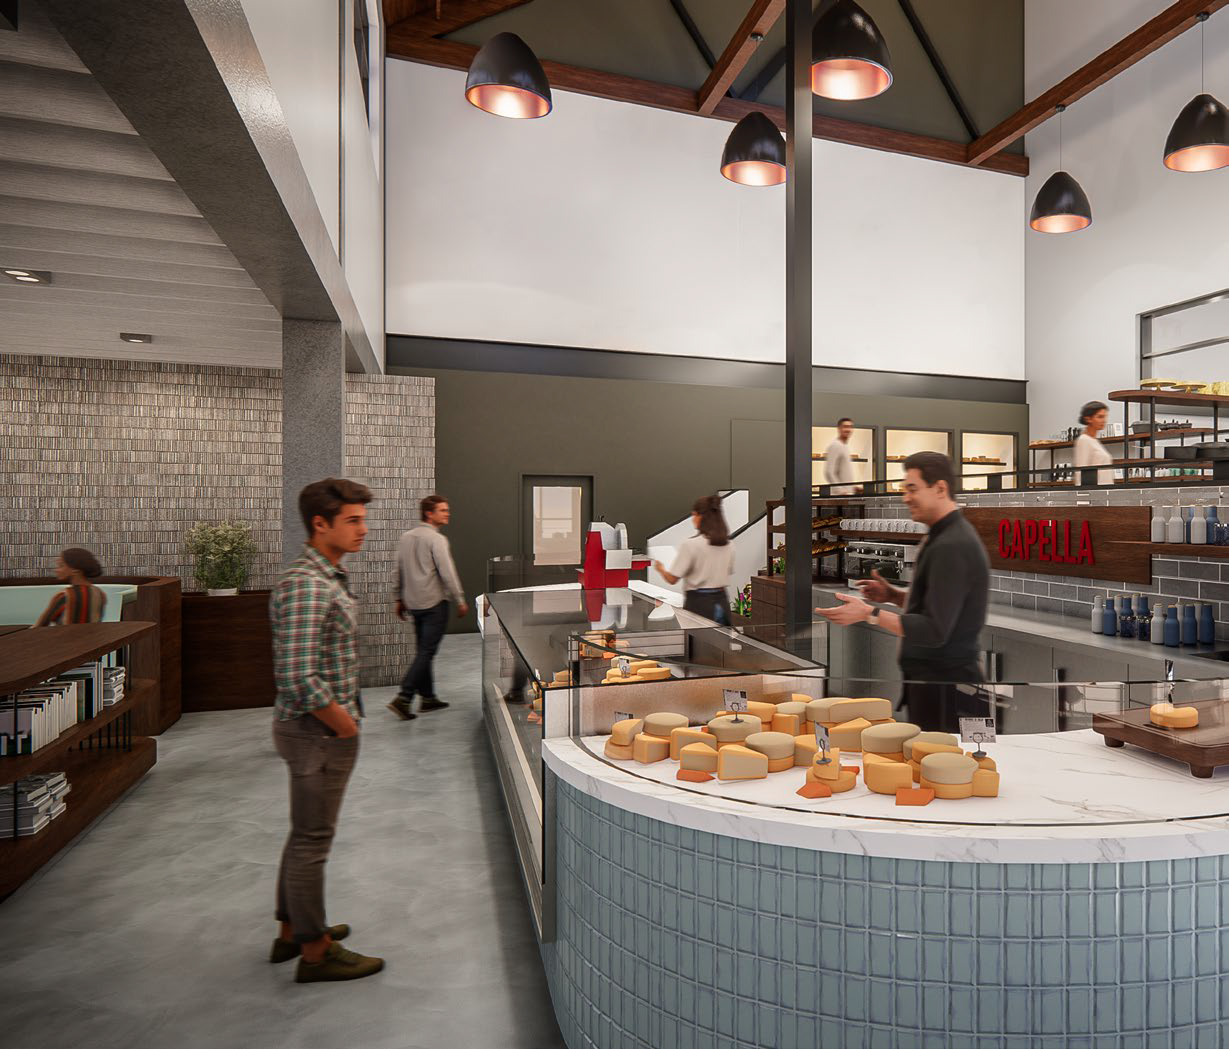 Rendering of the inside of Capella Cheese in northeast Atlanta. A man stands at the counter looking over cheese in the glass case while a salesperson in a black shirt and pants stands behind the counter